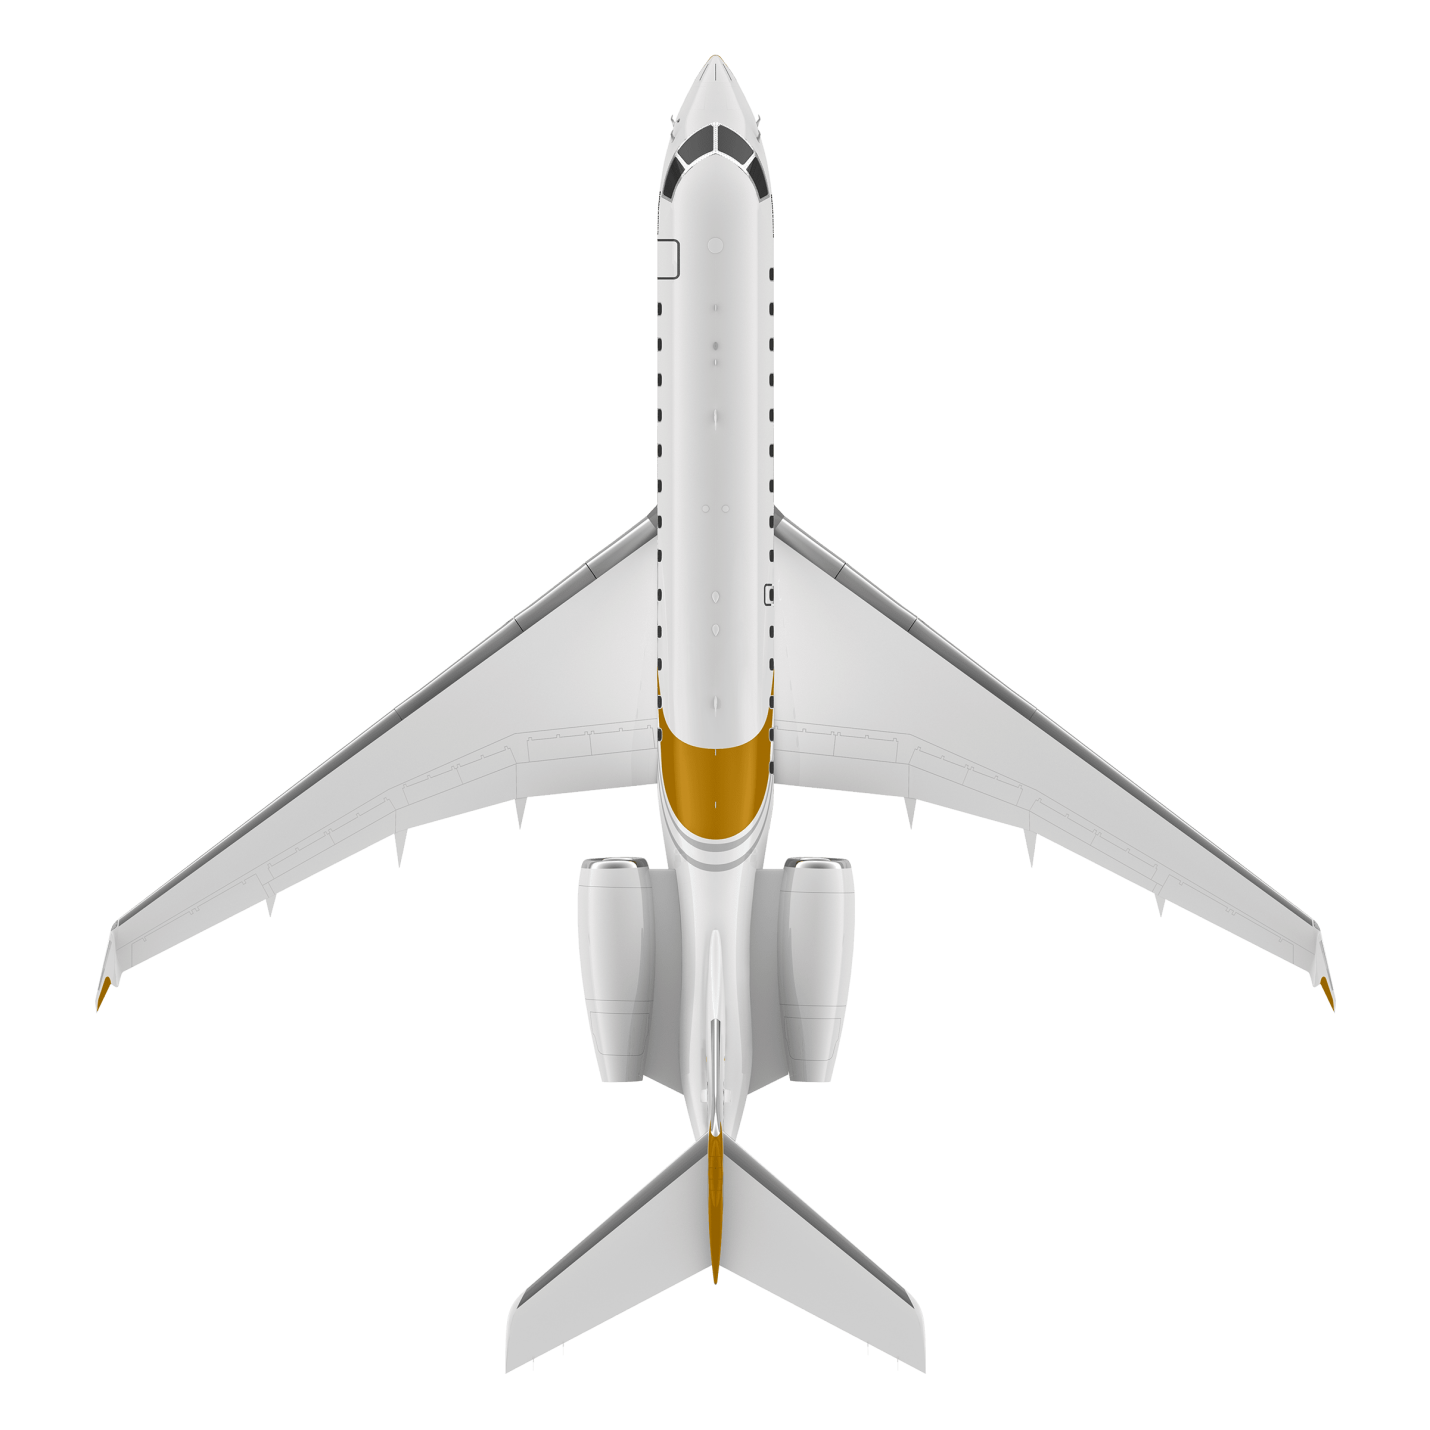 Global 6000 top view